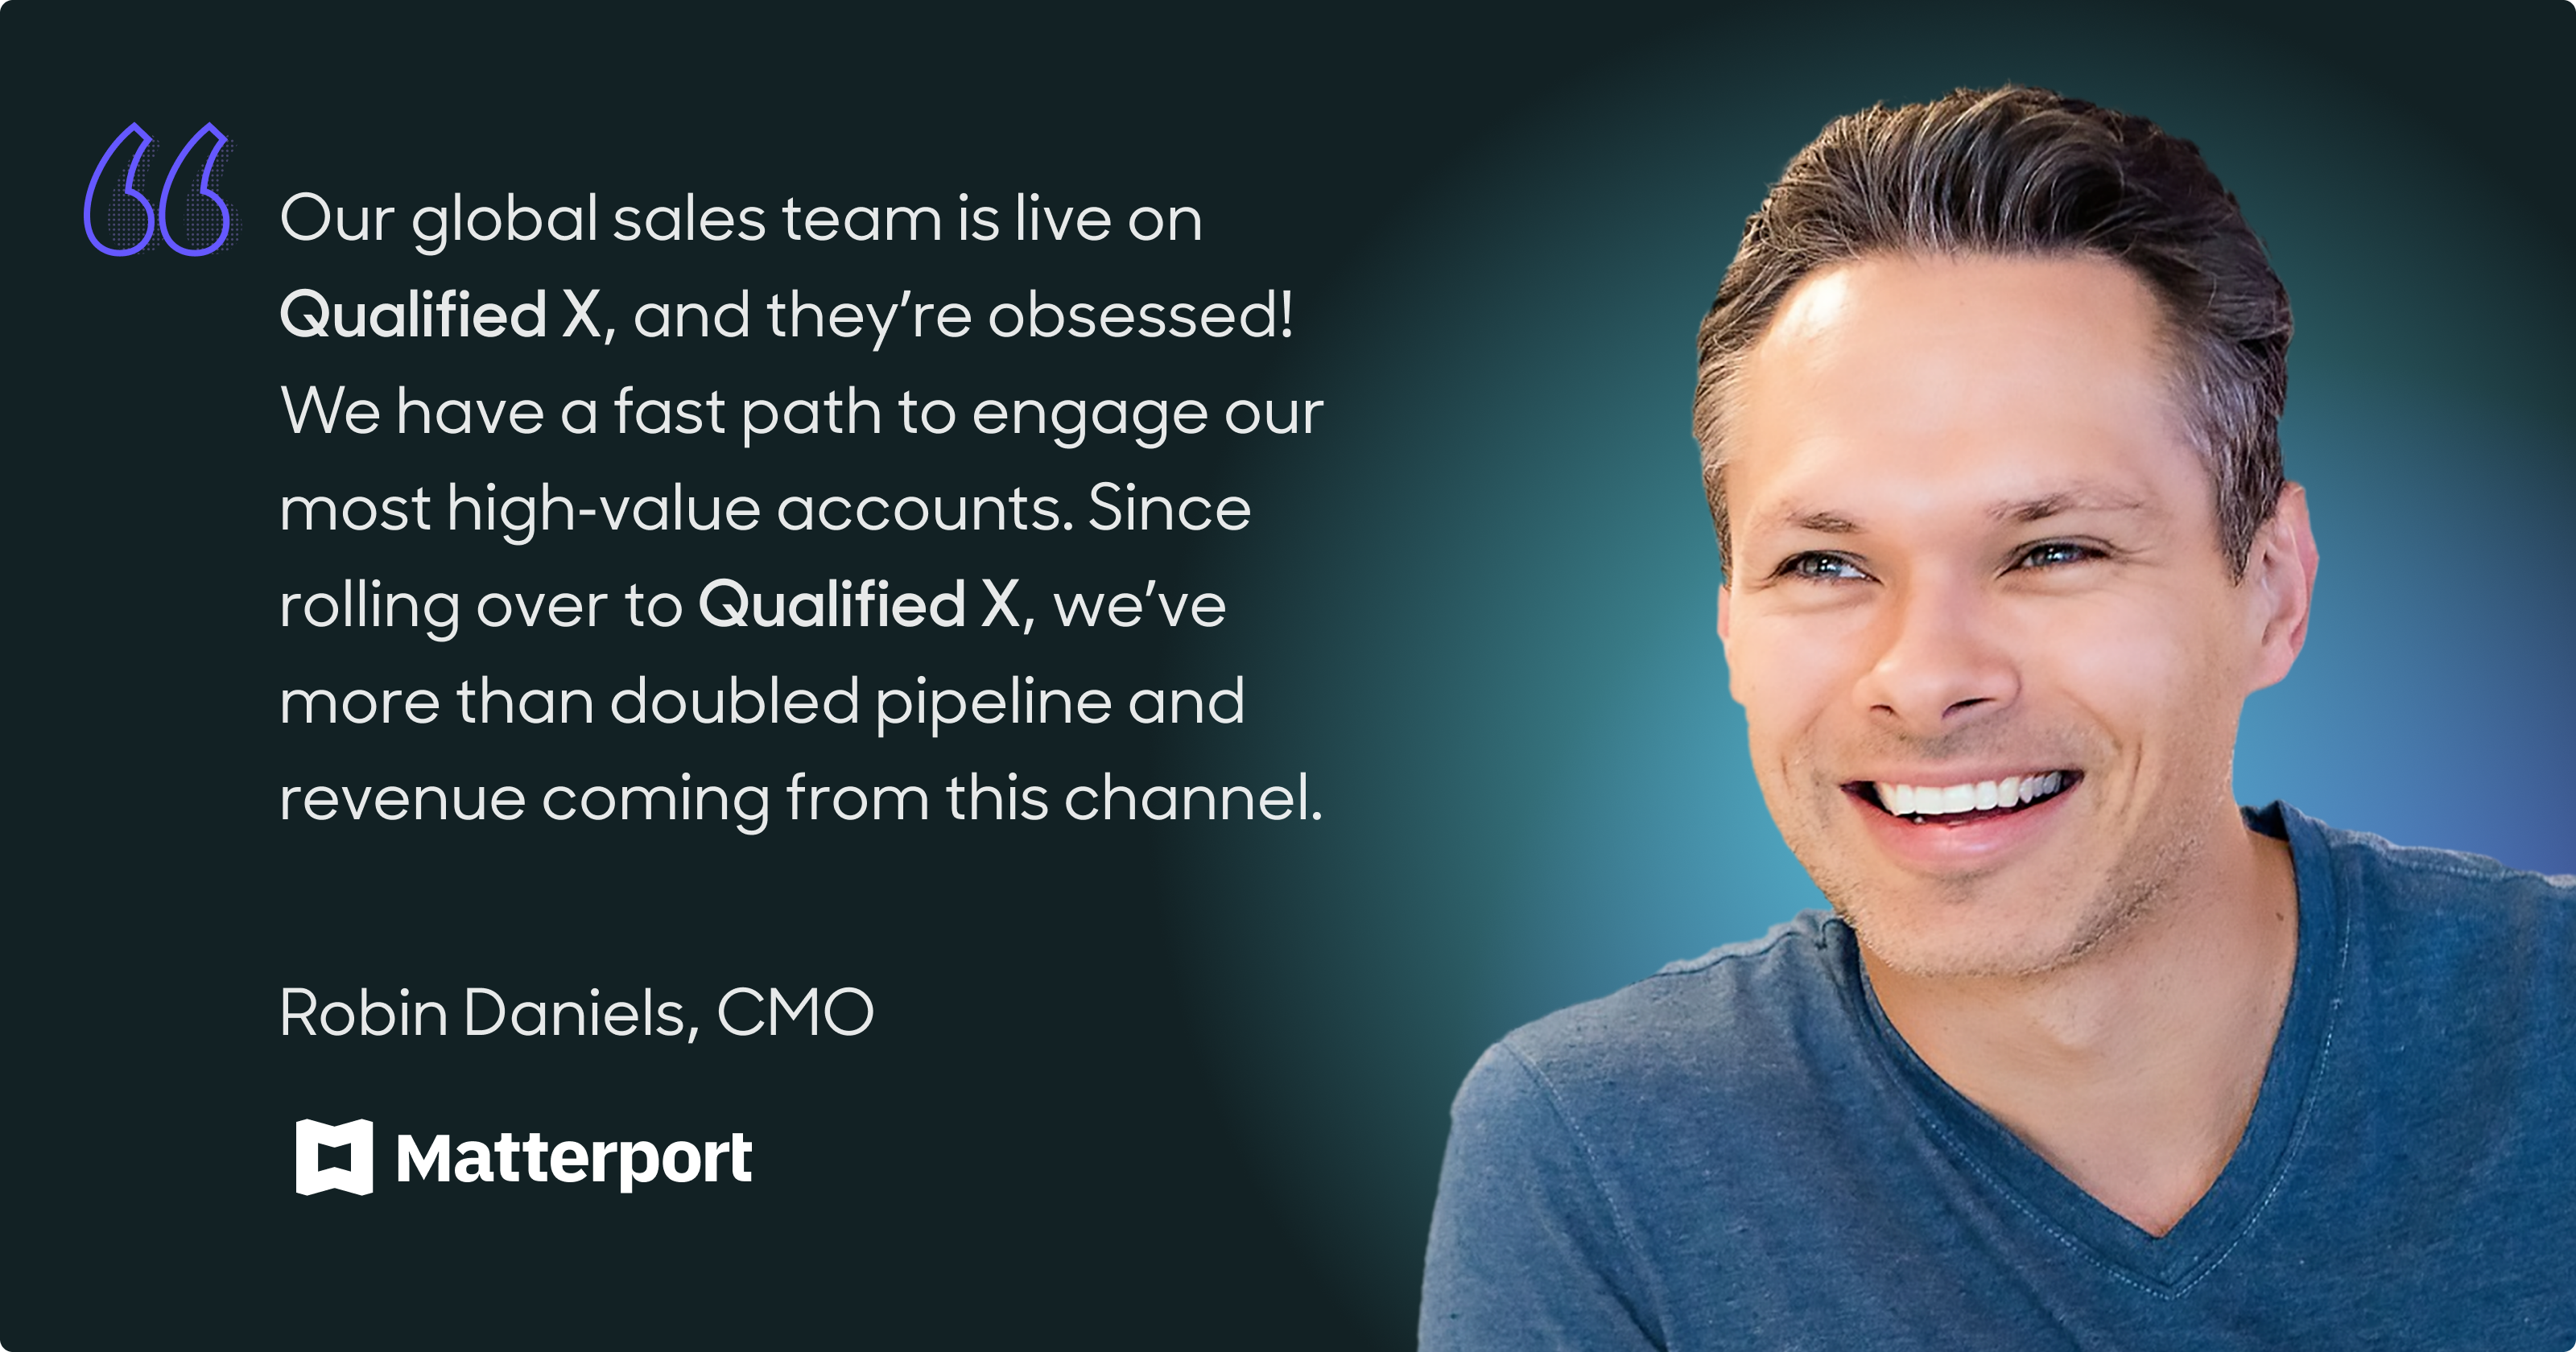 Robin Daniels, CMO at Matterport, has supercharged pipeline with Quailfied X